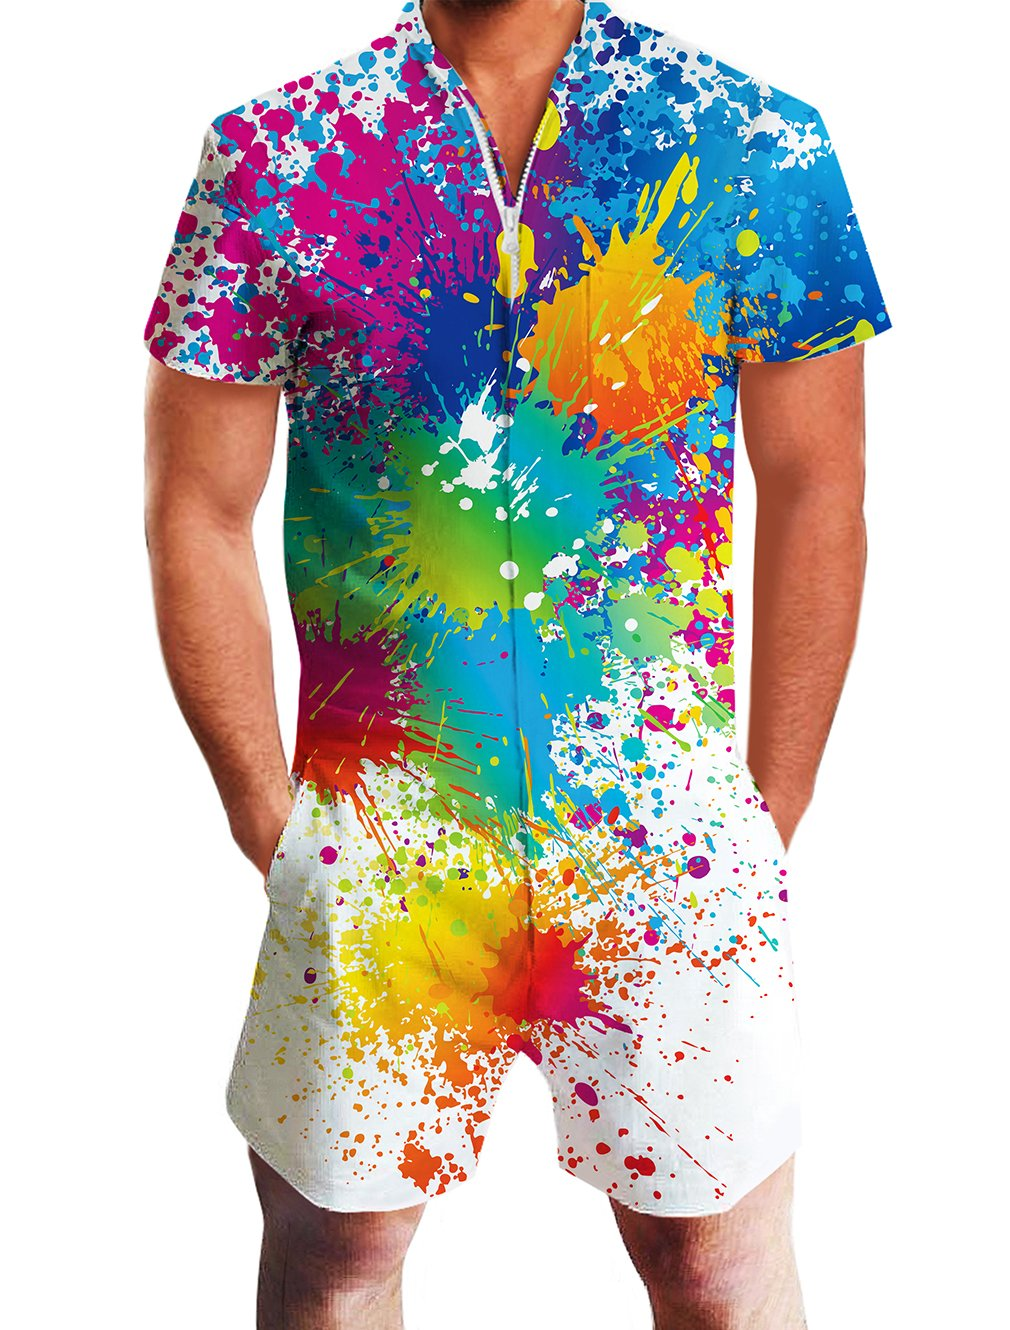 37a0d5bc857d Galleon - Leapparel Teens 3D Print Romper Graphic Colourful Tie-Dyed  Jumpsuits Zip Up One Piece Short Sleeve Rompers Overalls 90s Clothing M